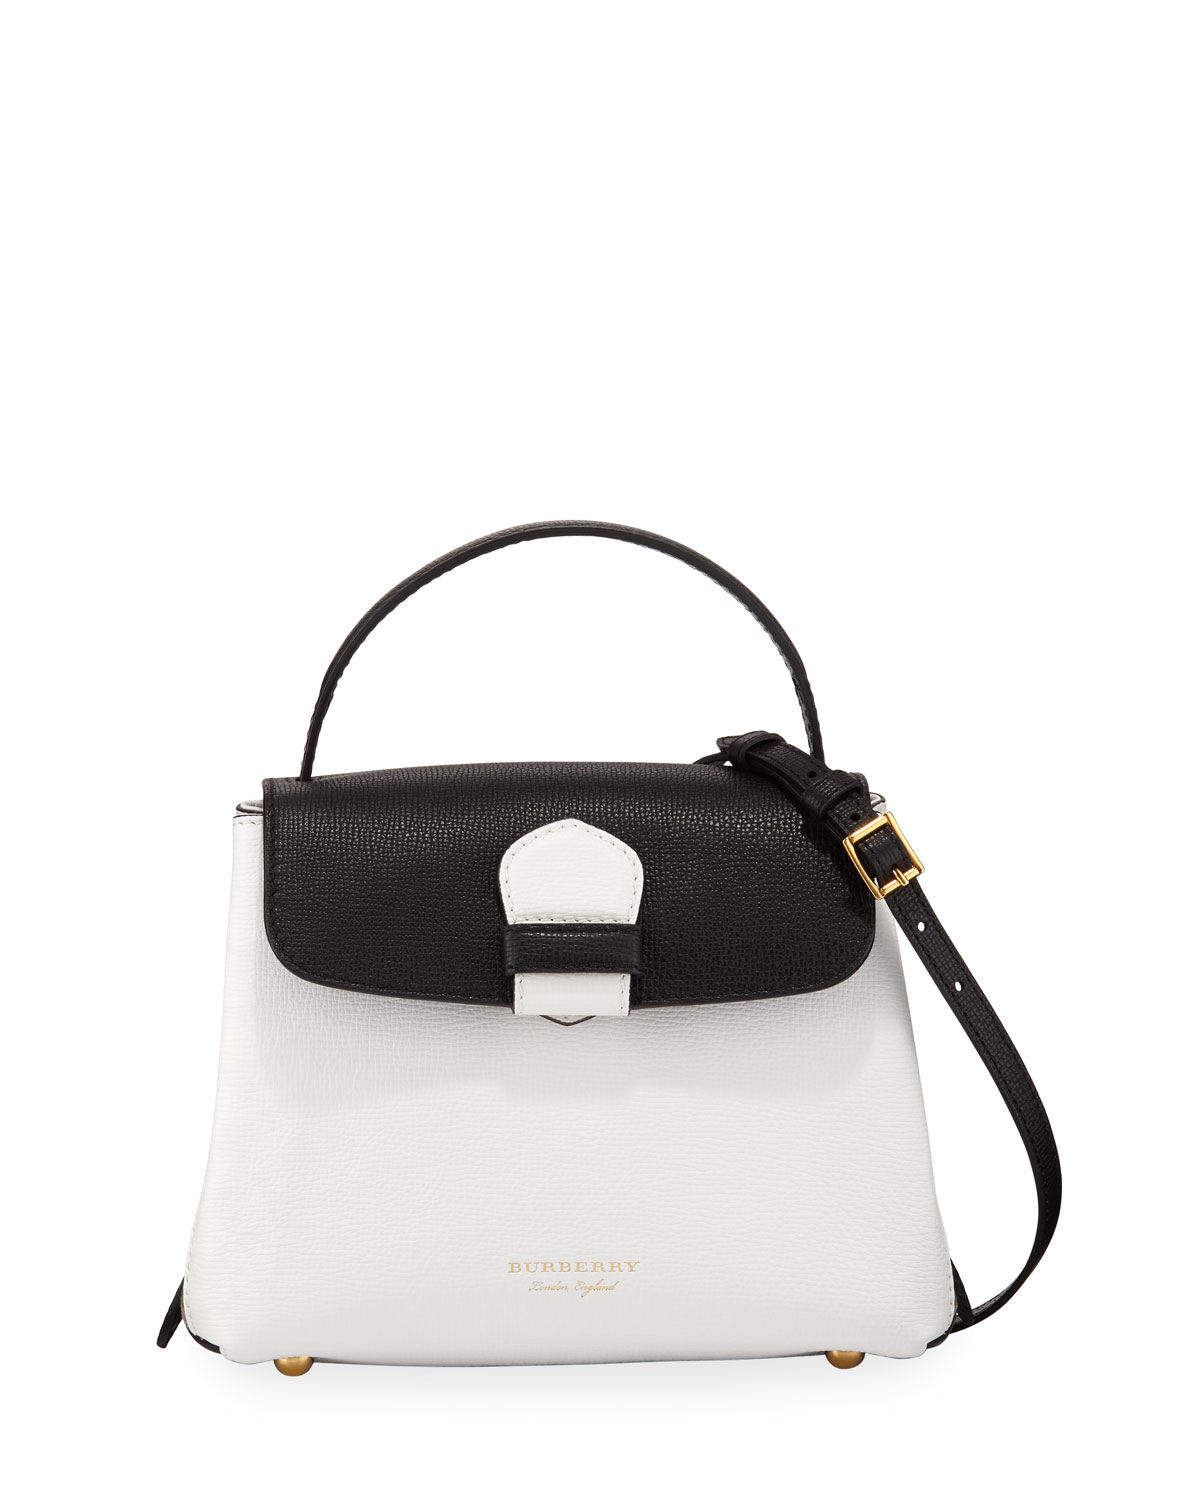 Camberley Derby Small Leather Tote Bag White Black